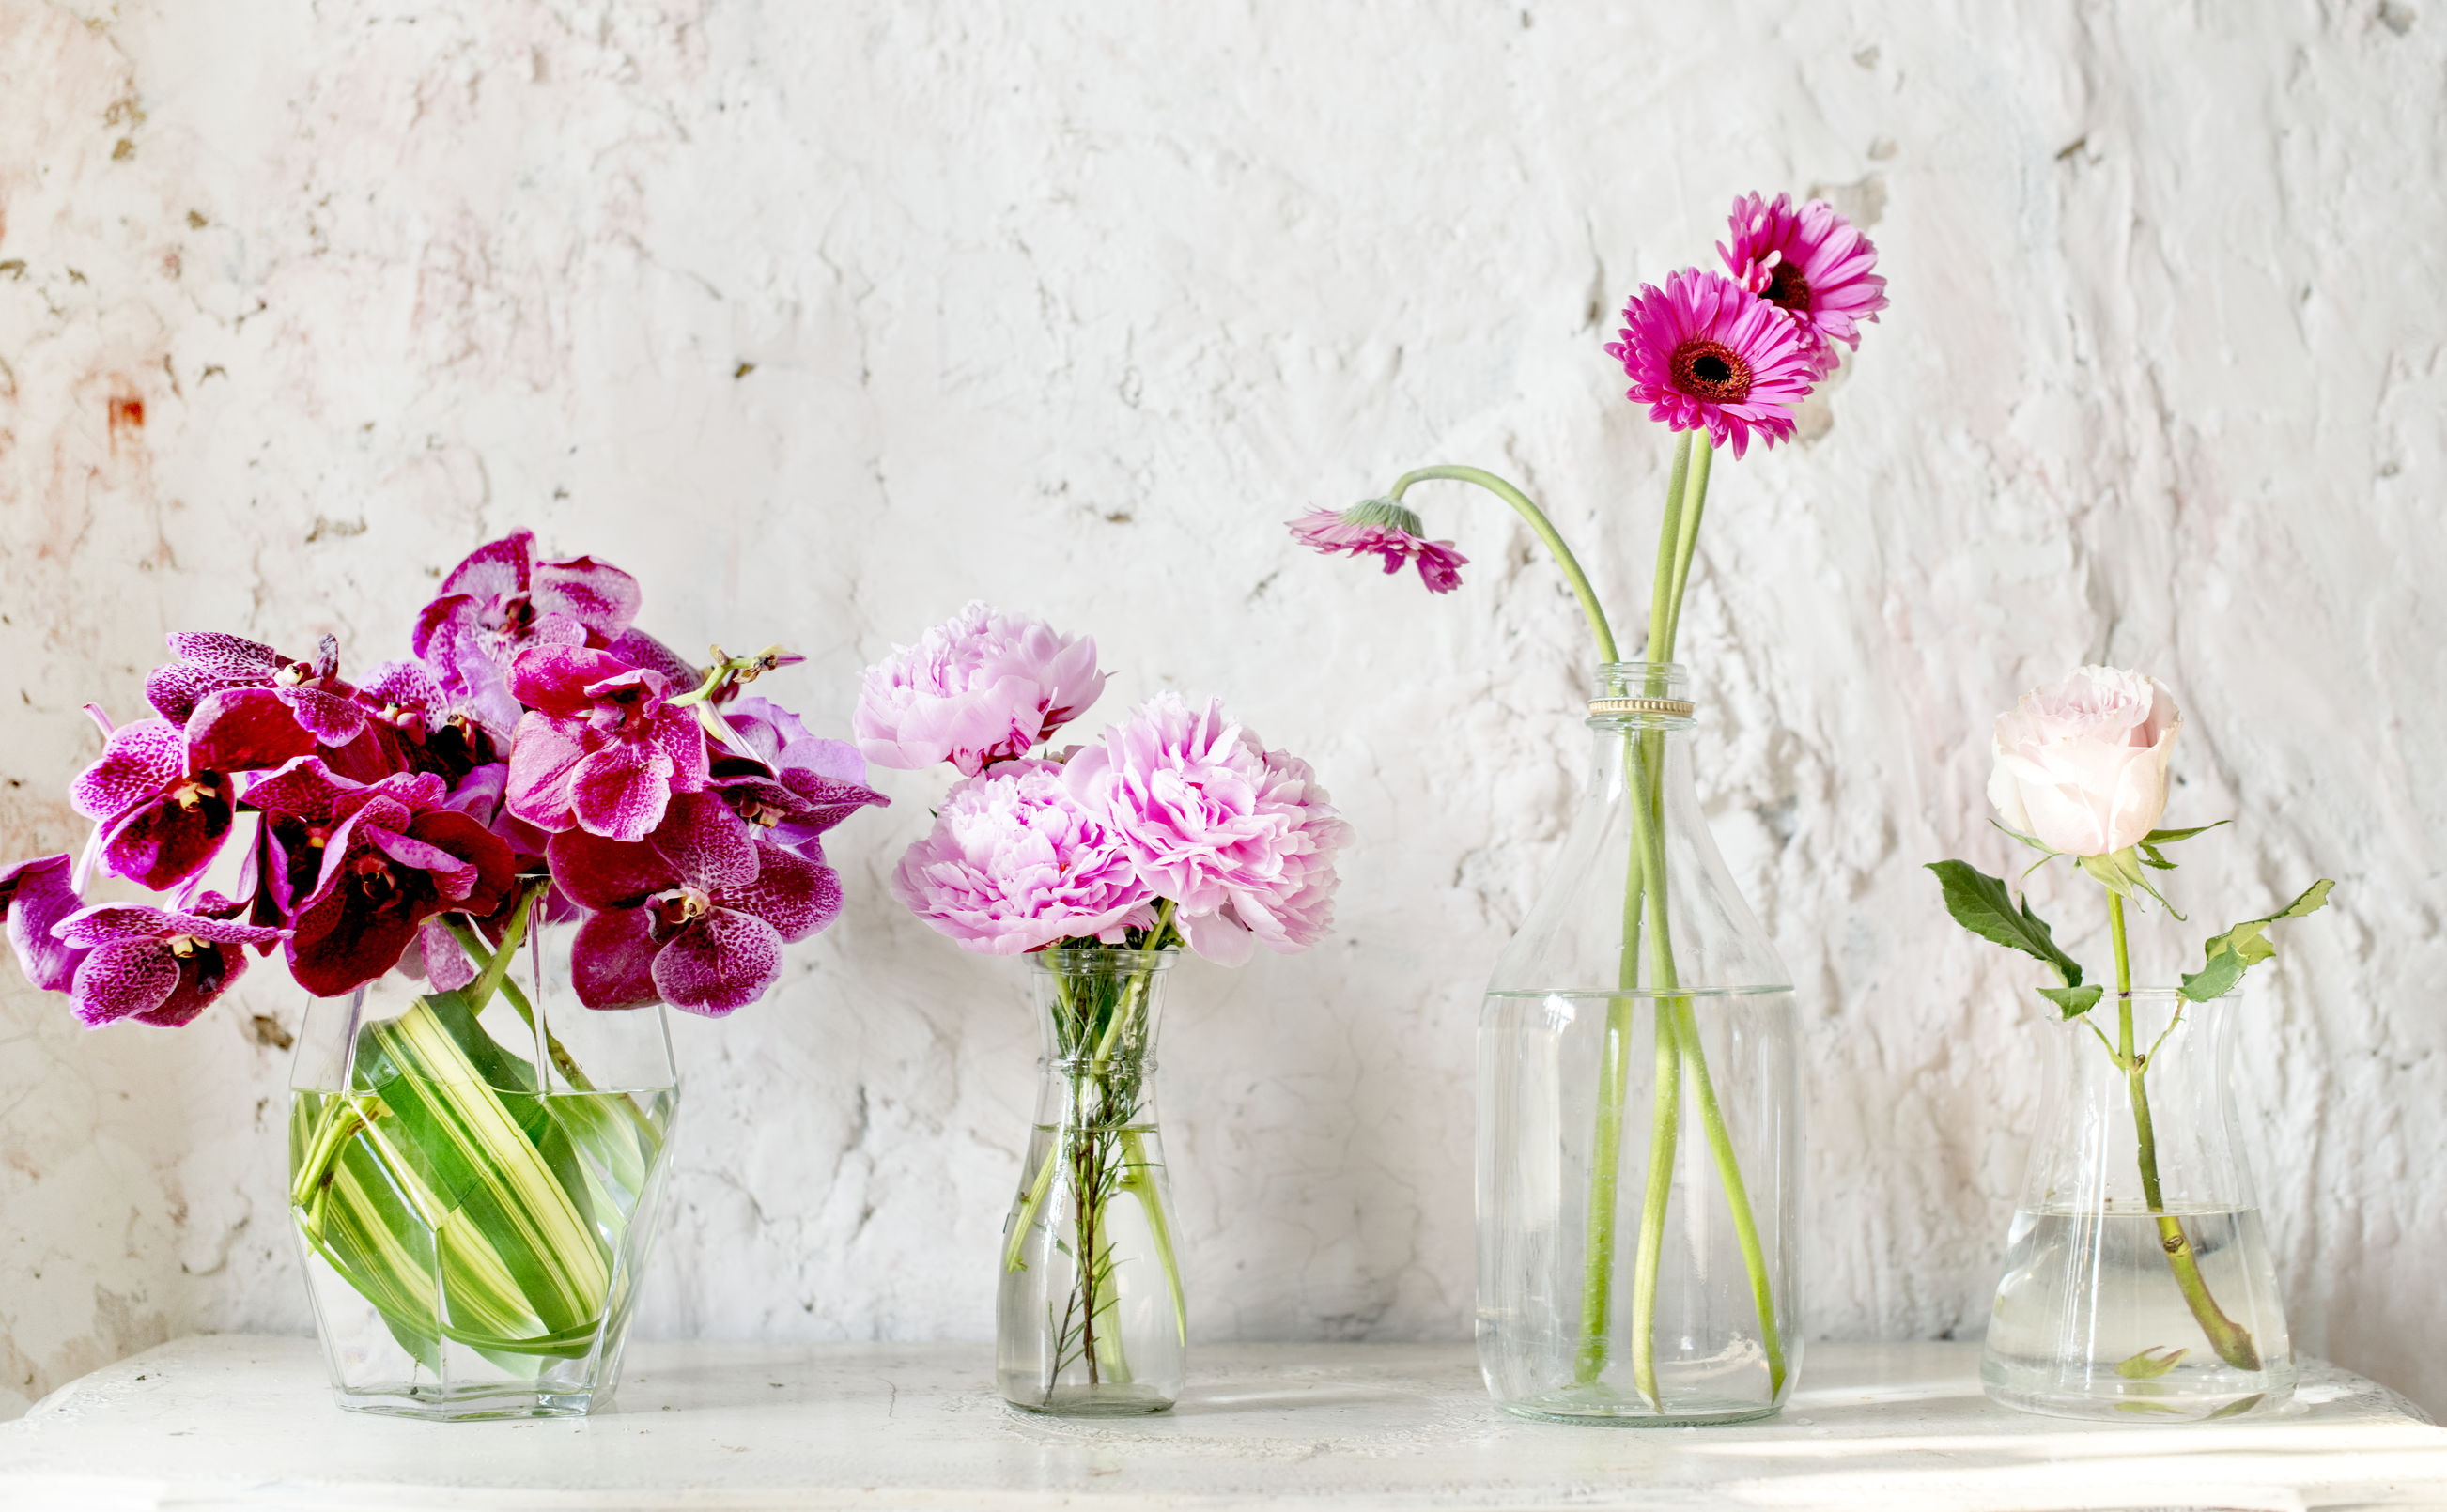 row of glass vases with flowers